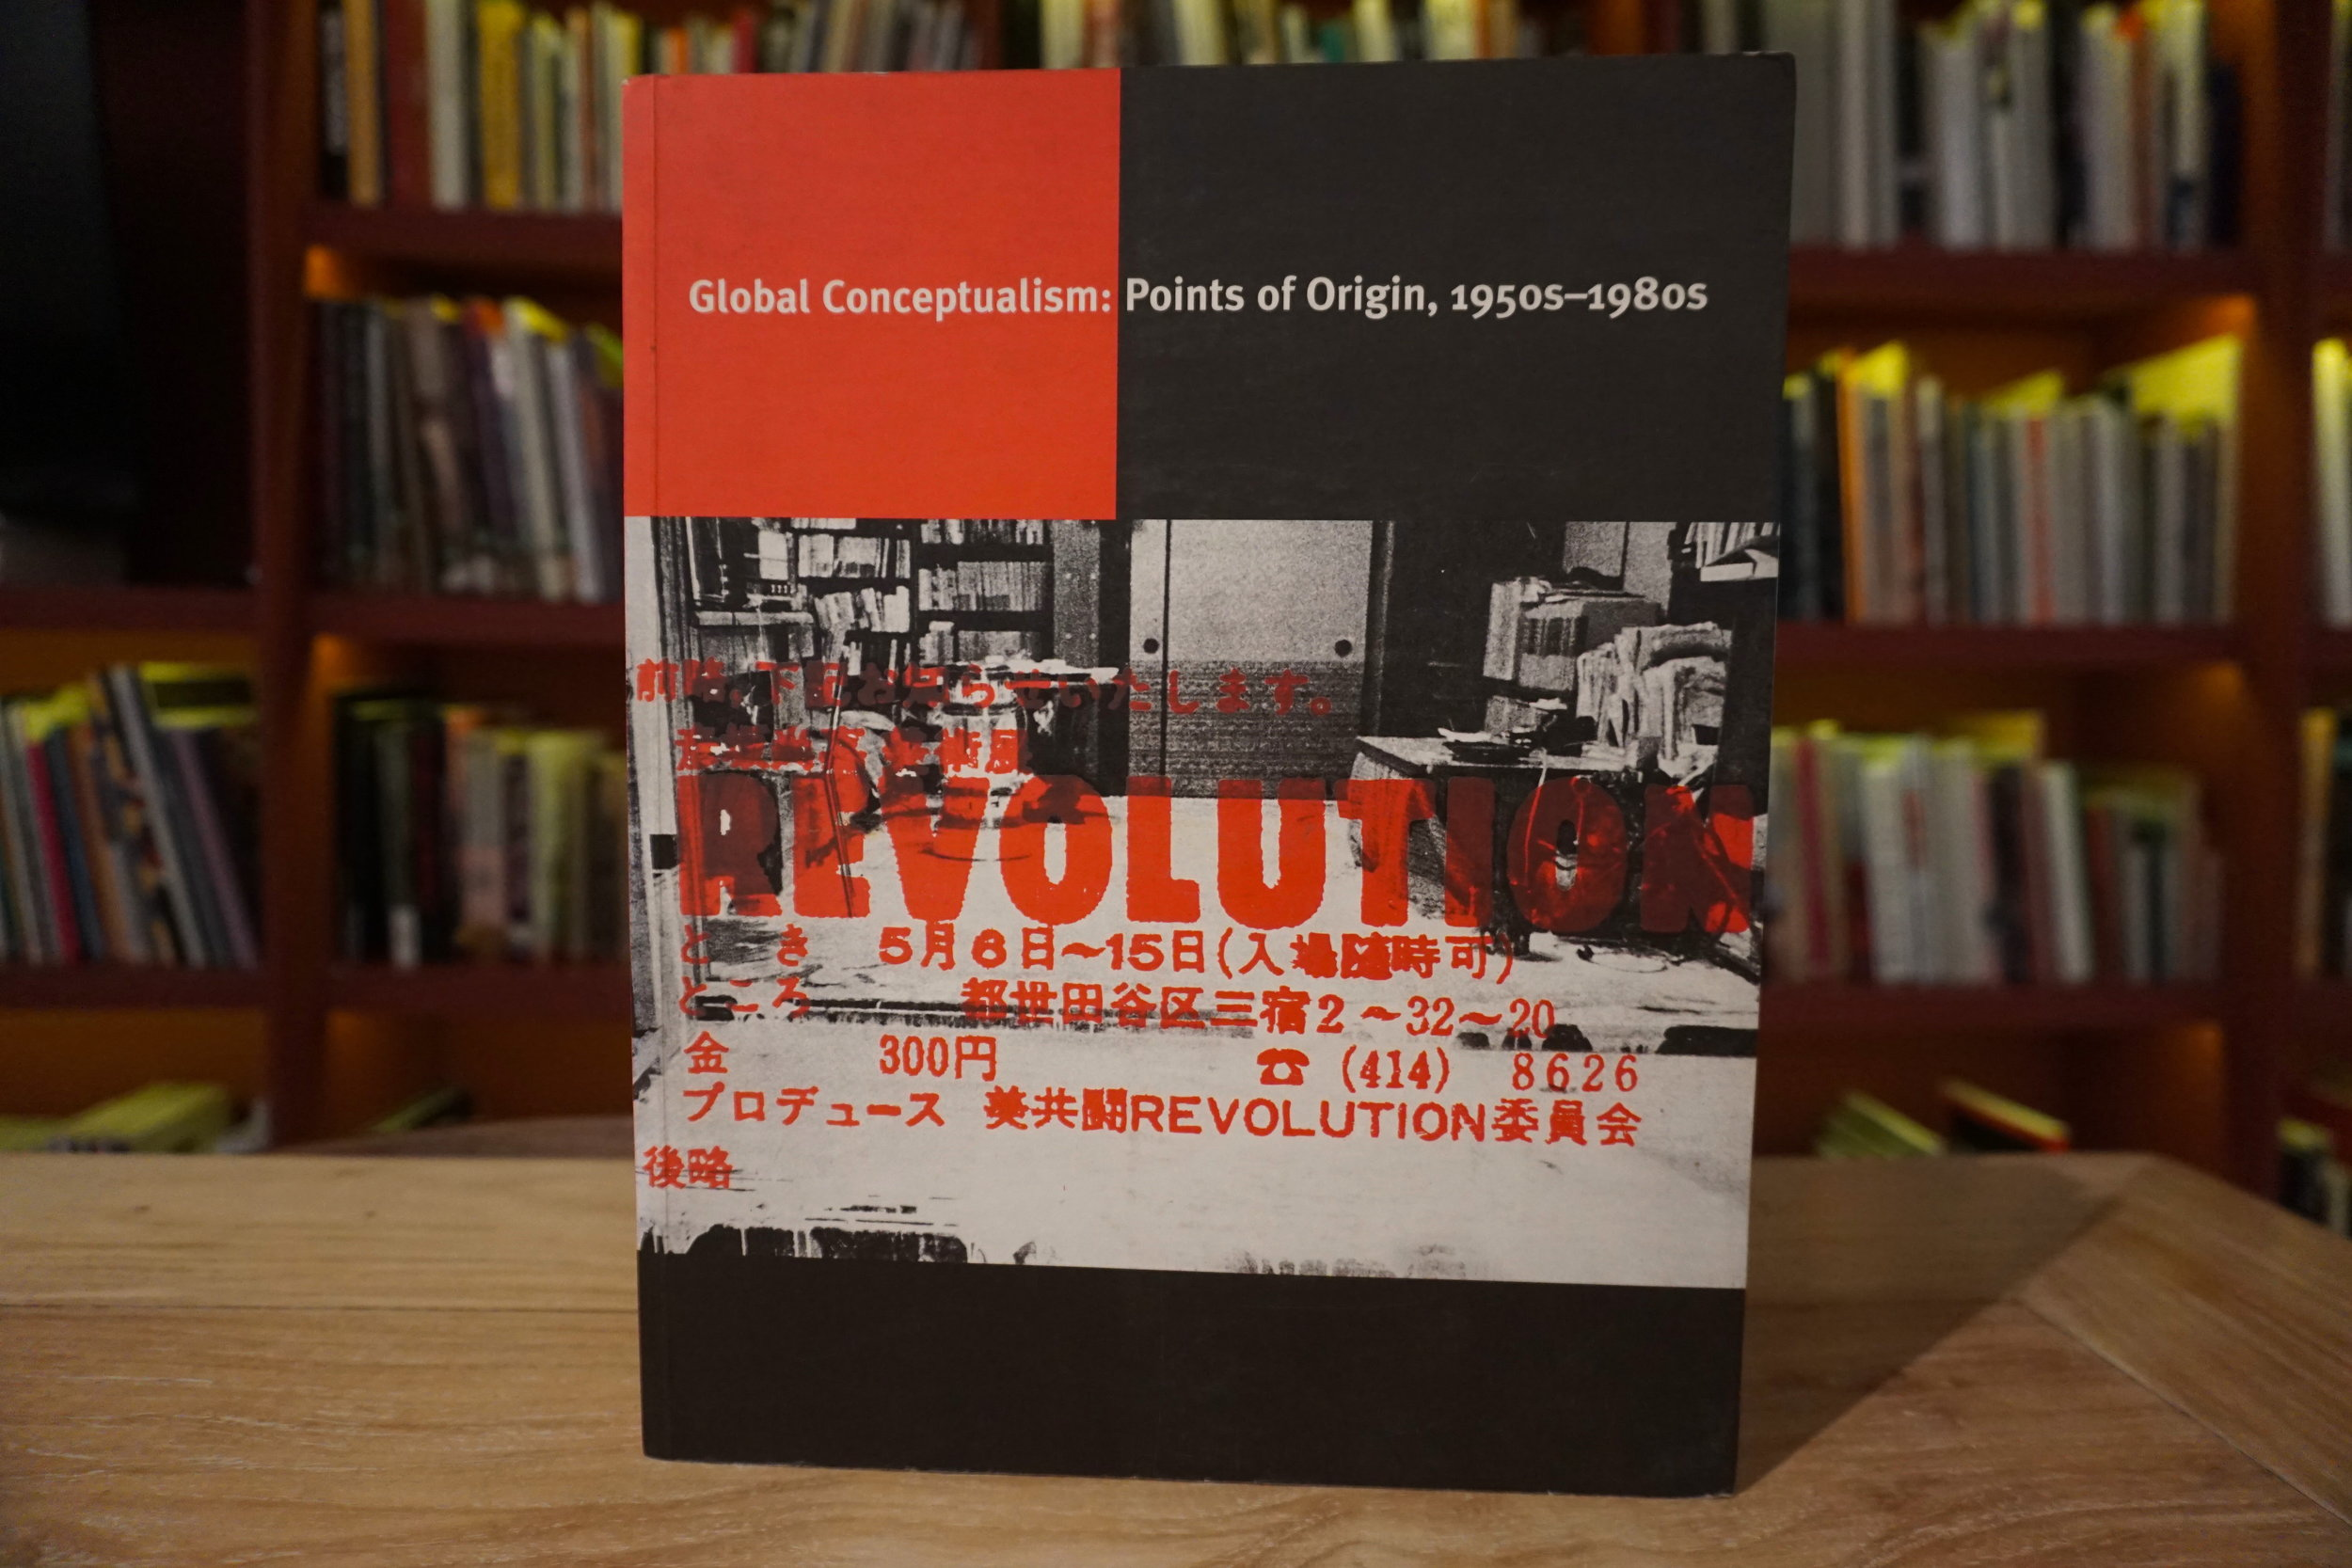 Global Conceptualism: Points of Origin, 1950s-1980s